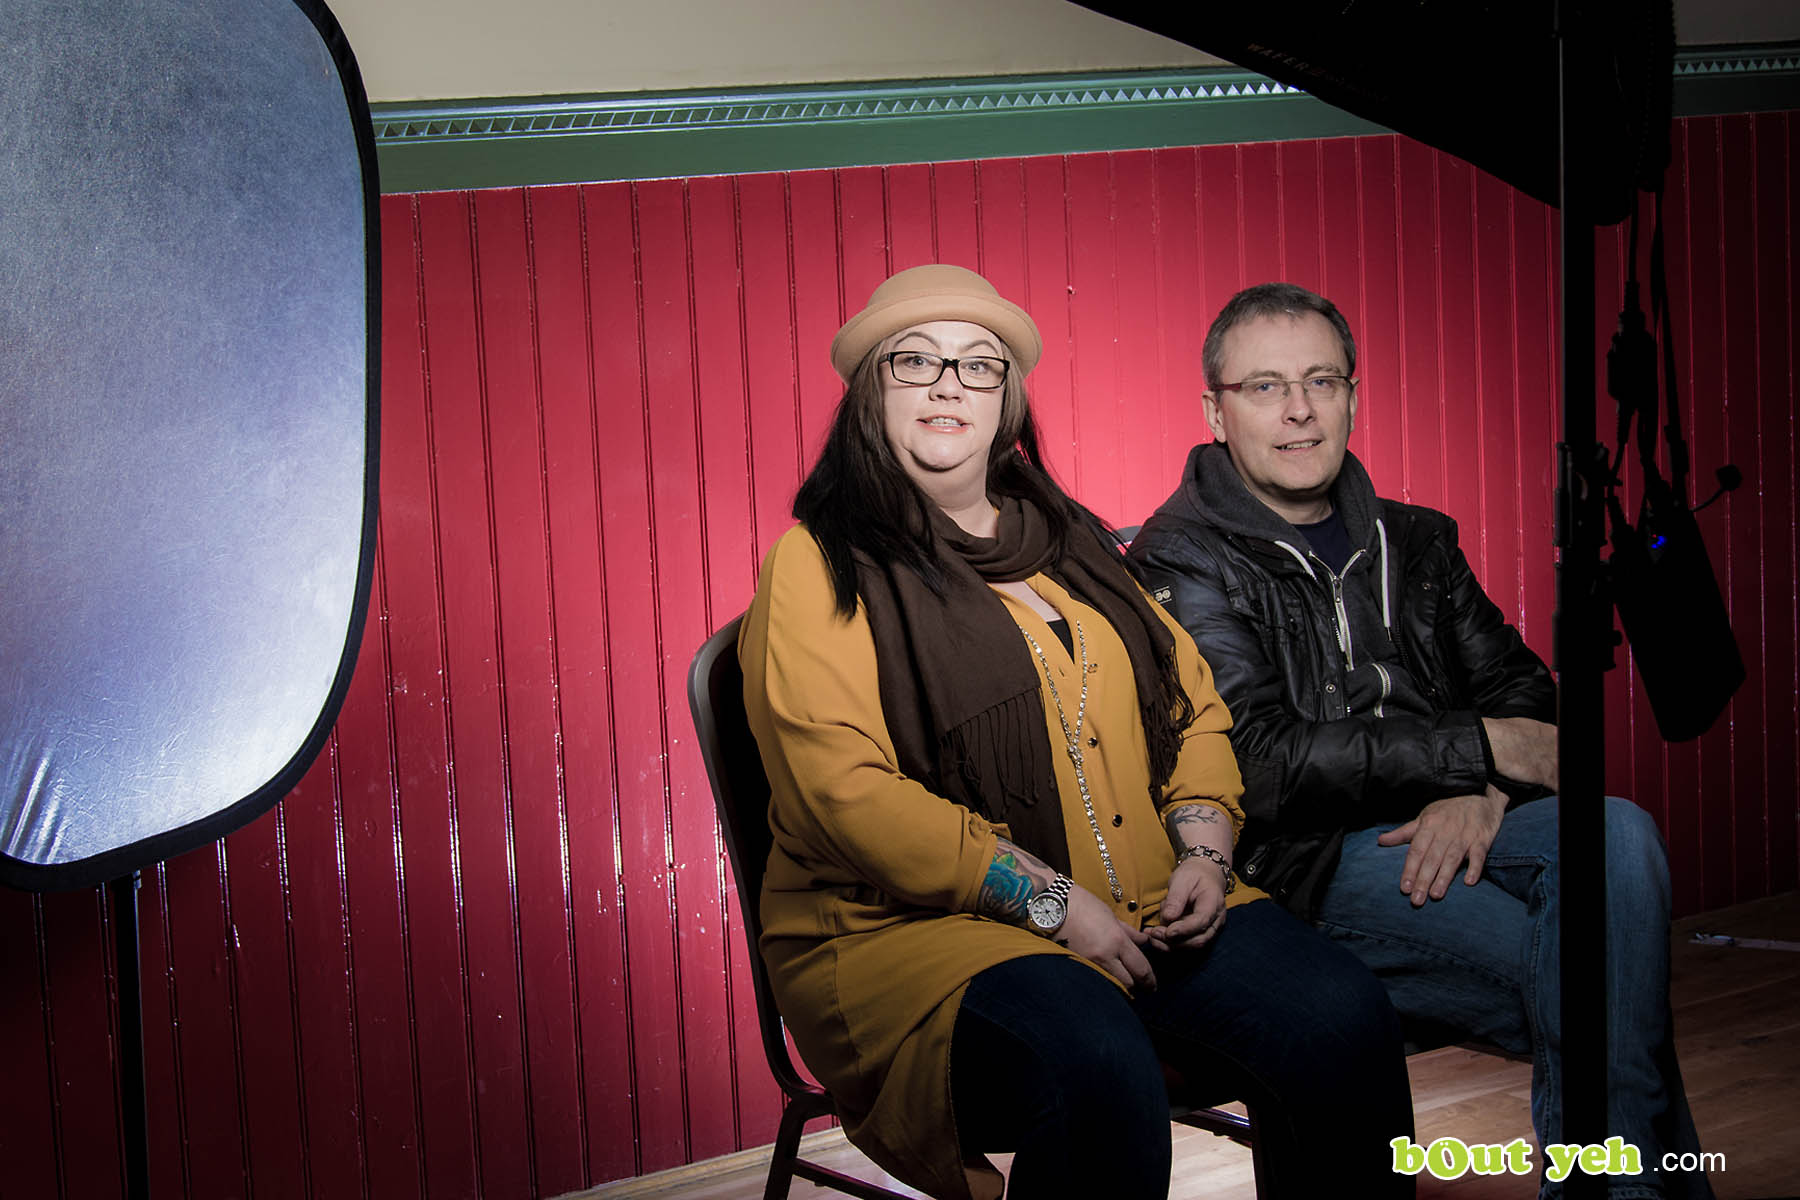 Kaz Hawkins and Stephen by Bout Yeh photographers Belfast - photo 9068